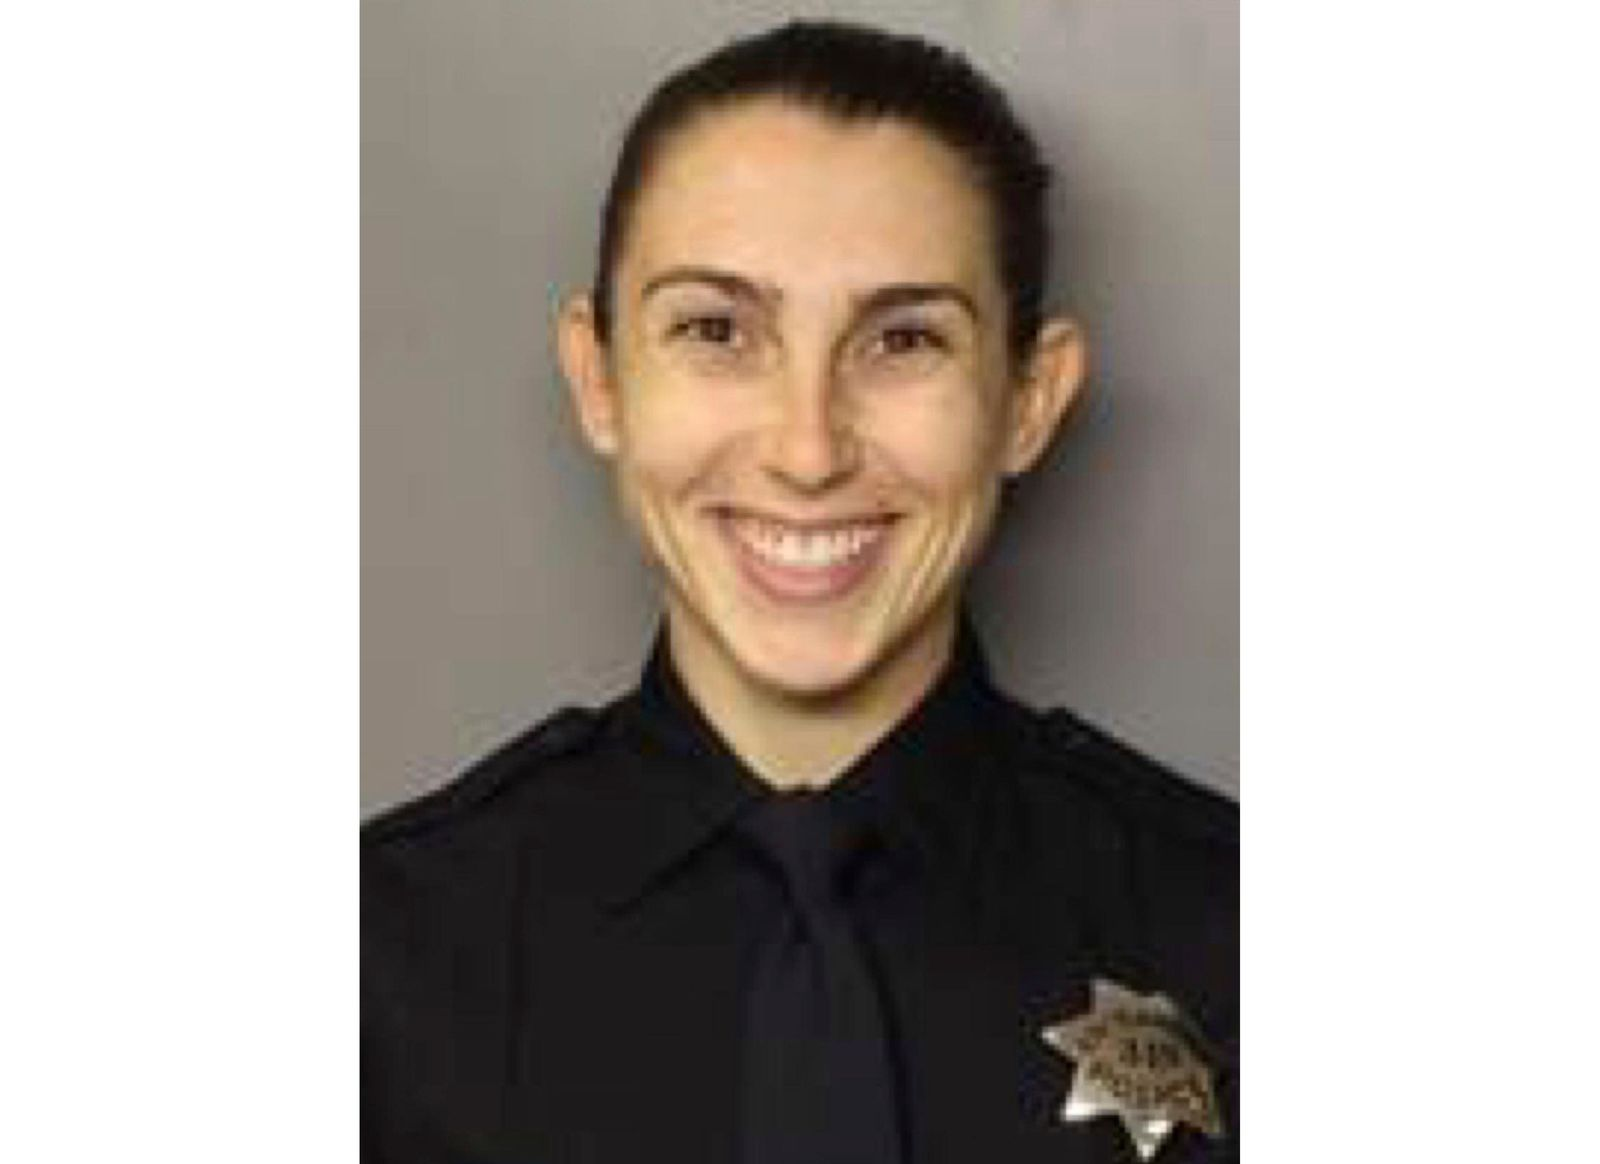 In this undated photo released by the Sacramento Police Department is Officer Tara O' Sullivan. Sacramento police says the officer killed Wednesday, June 19, 2019, during a domestic violence call entered their academy in May 2018 and graduated seven months later, in December. The Sacramento Department said in a statement Thursday, June 20, 2019 that Officer Tara O'Sullivan was initially hired in January 2018 as a community service officer. (Sacramento Police Department via AP)